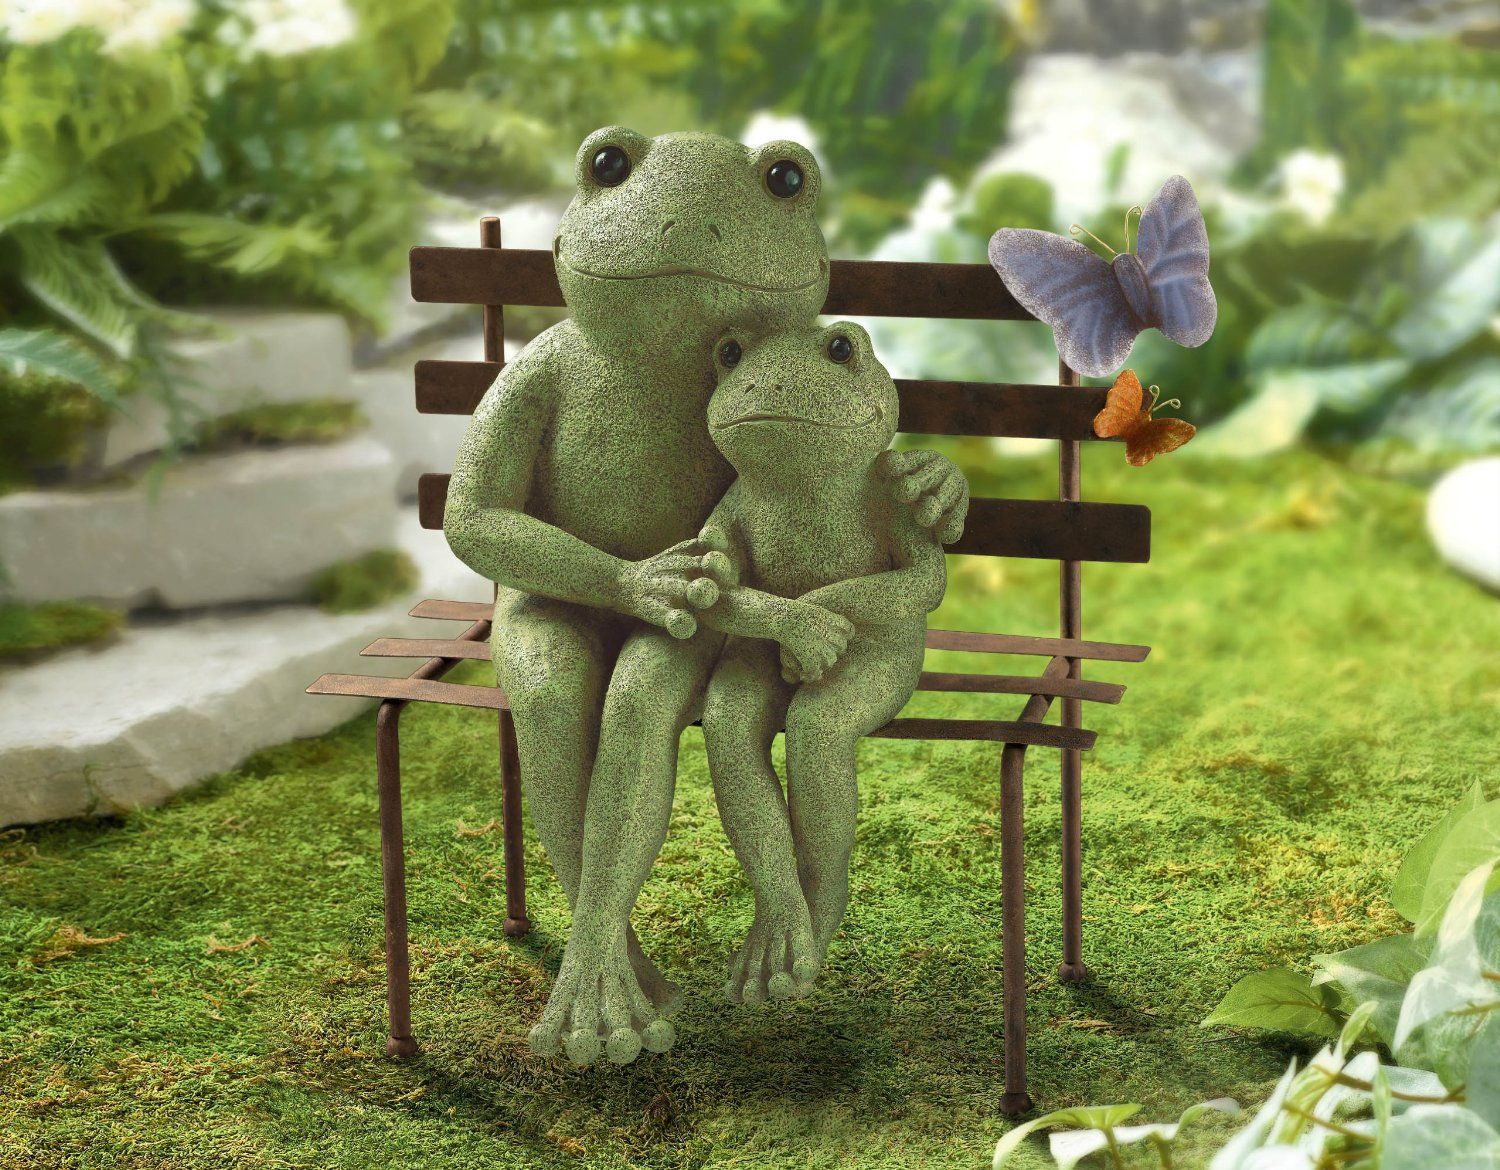 Mama frog with baby frog on bench #Frogs #Figurine #GardenDecor ...